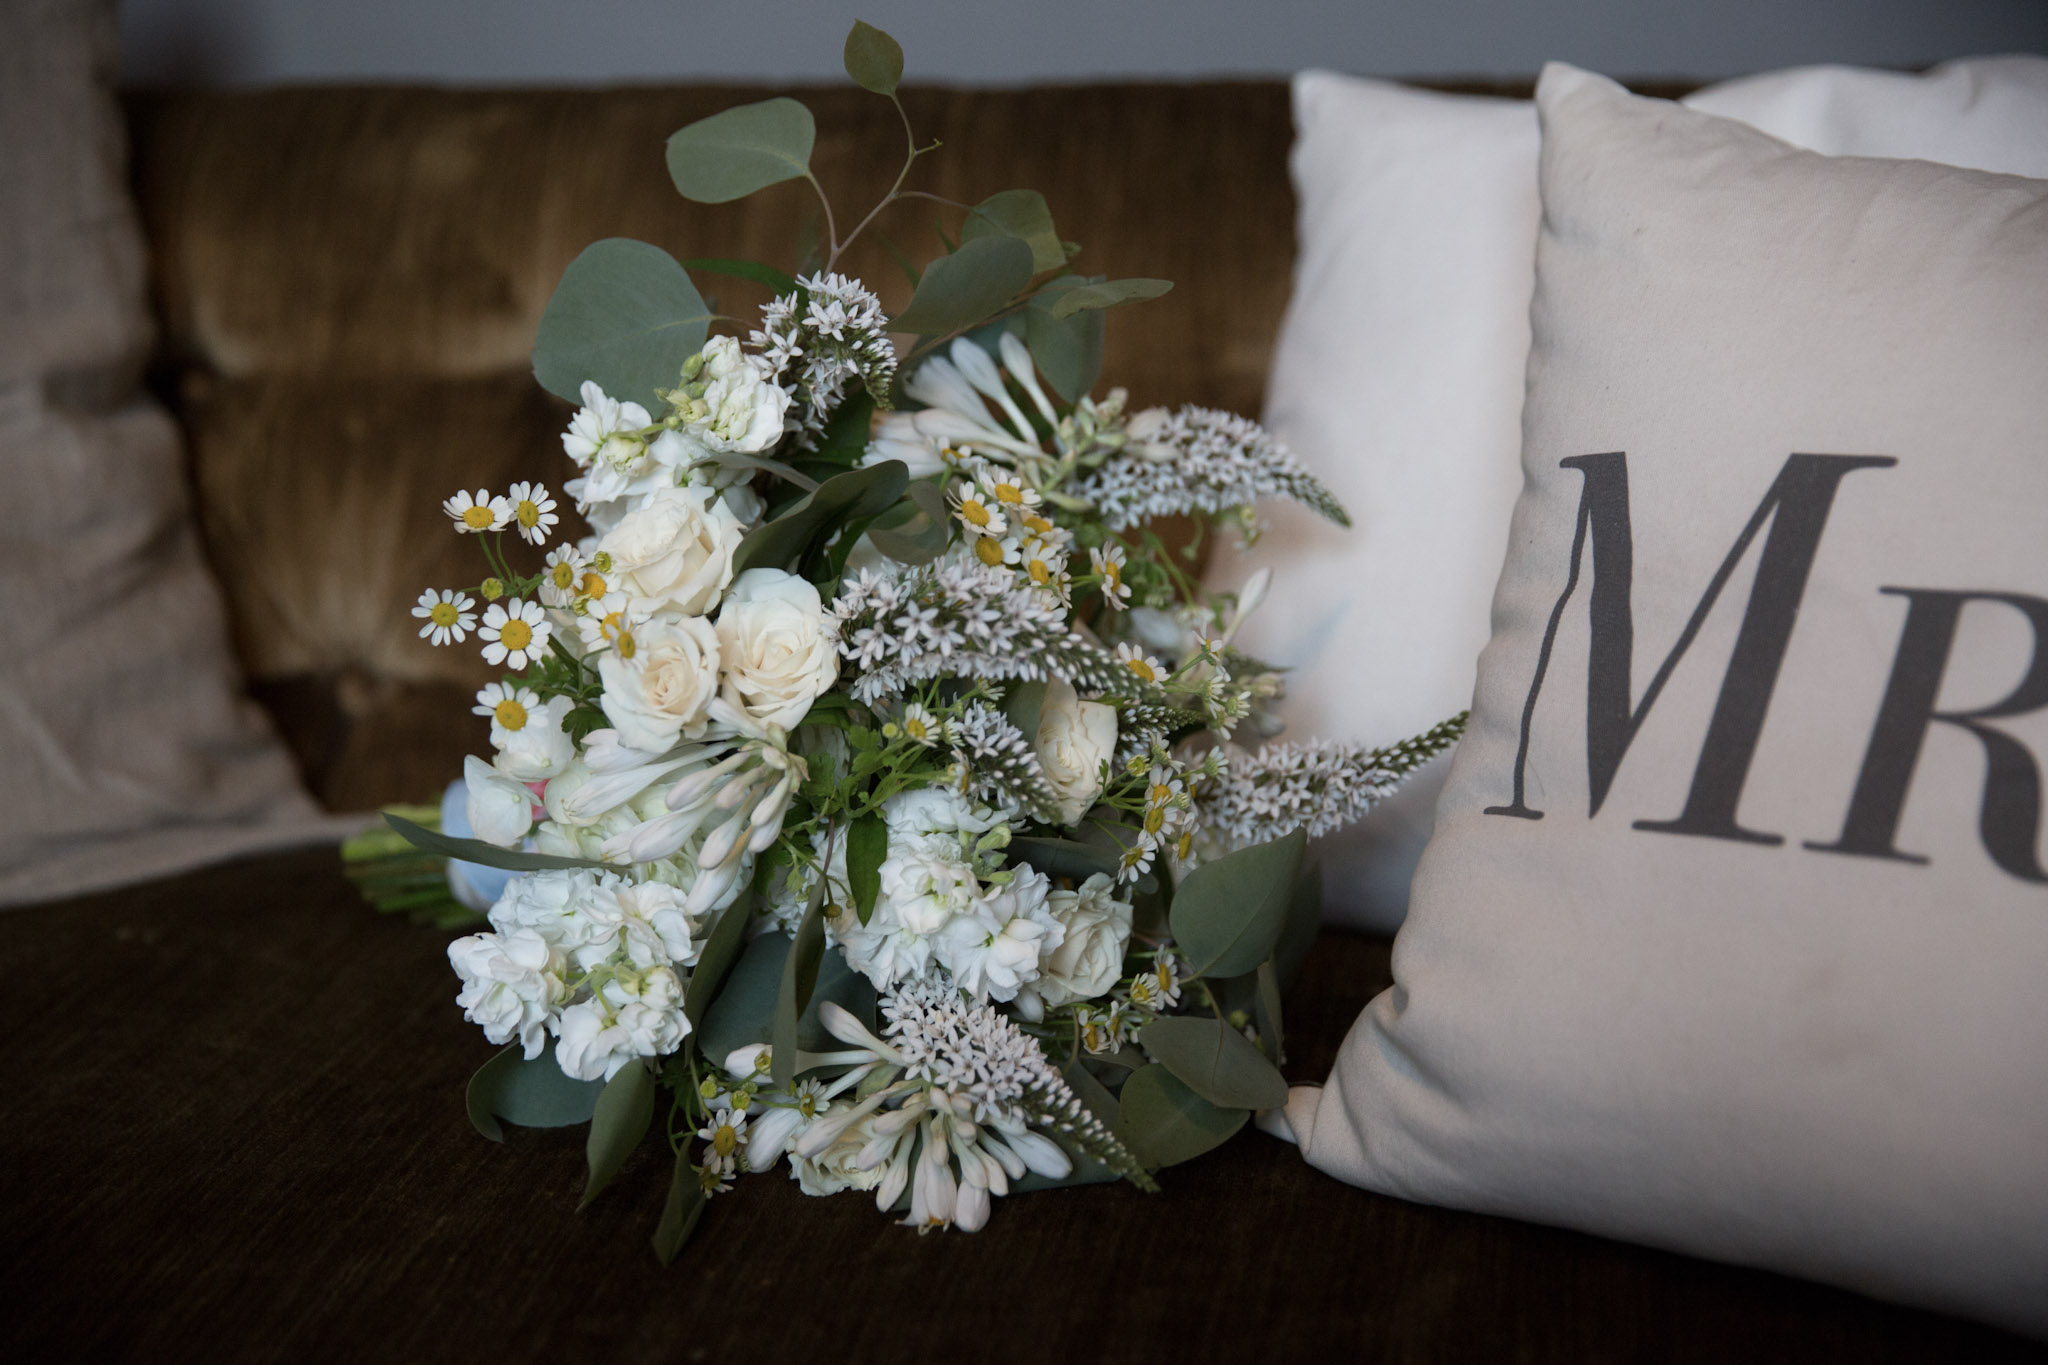 Kansas_City_Small_Wedding_Venue_Elope_Intimate_Ceremony_Budget_Affordable_Summer_Flowers_569A8597-12.jpg